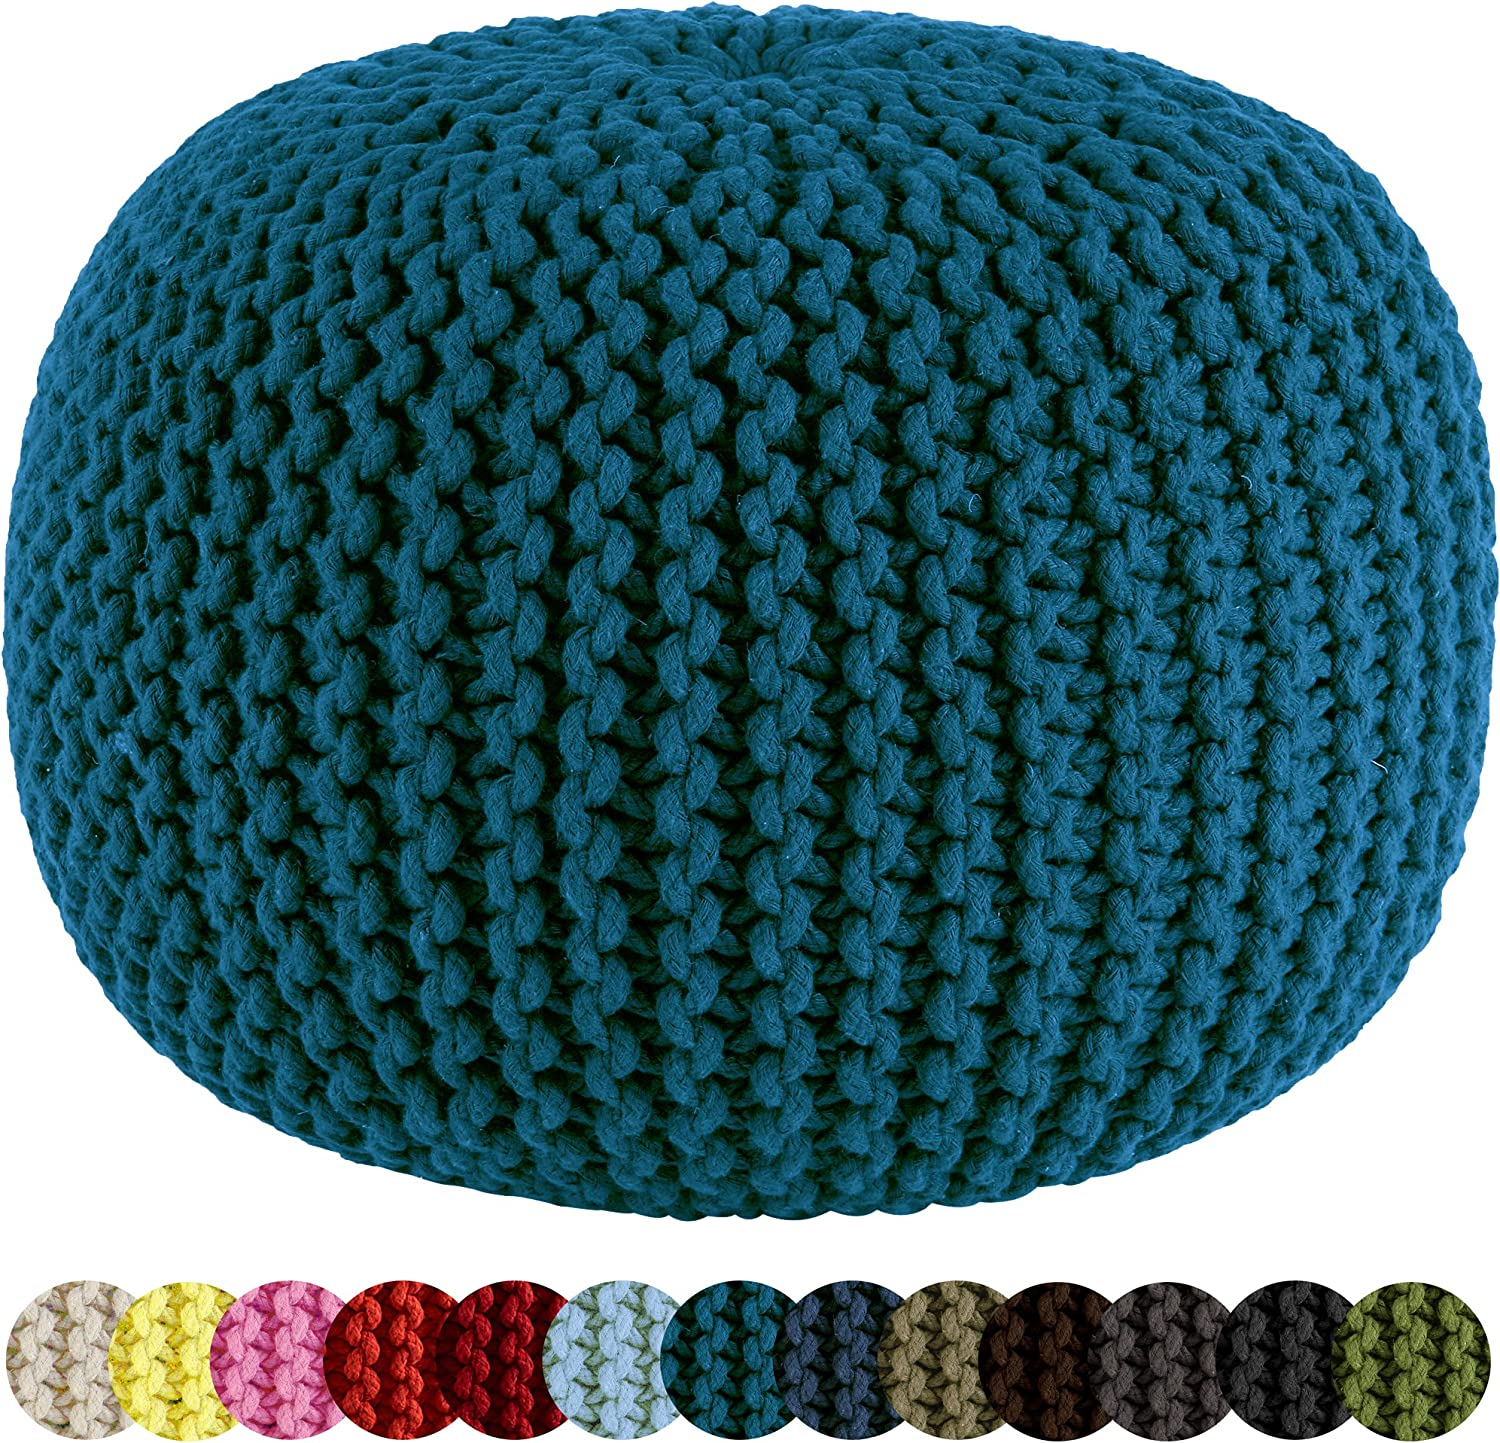 Floor Ottoman Cotton Craft Hand Knitted Cable Style Dori Pouf Truly one of a kind seating Handmade /& Hand stitched 100/% Cotton Braid Cord 20 Dia x 14 High Pink